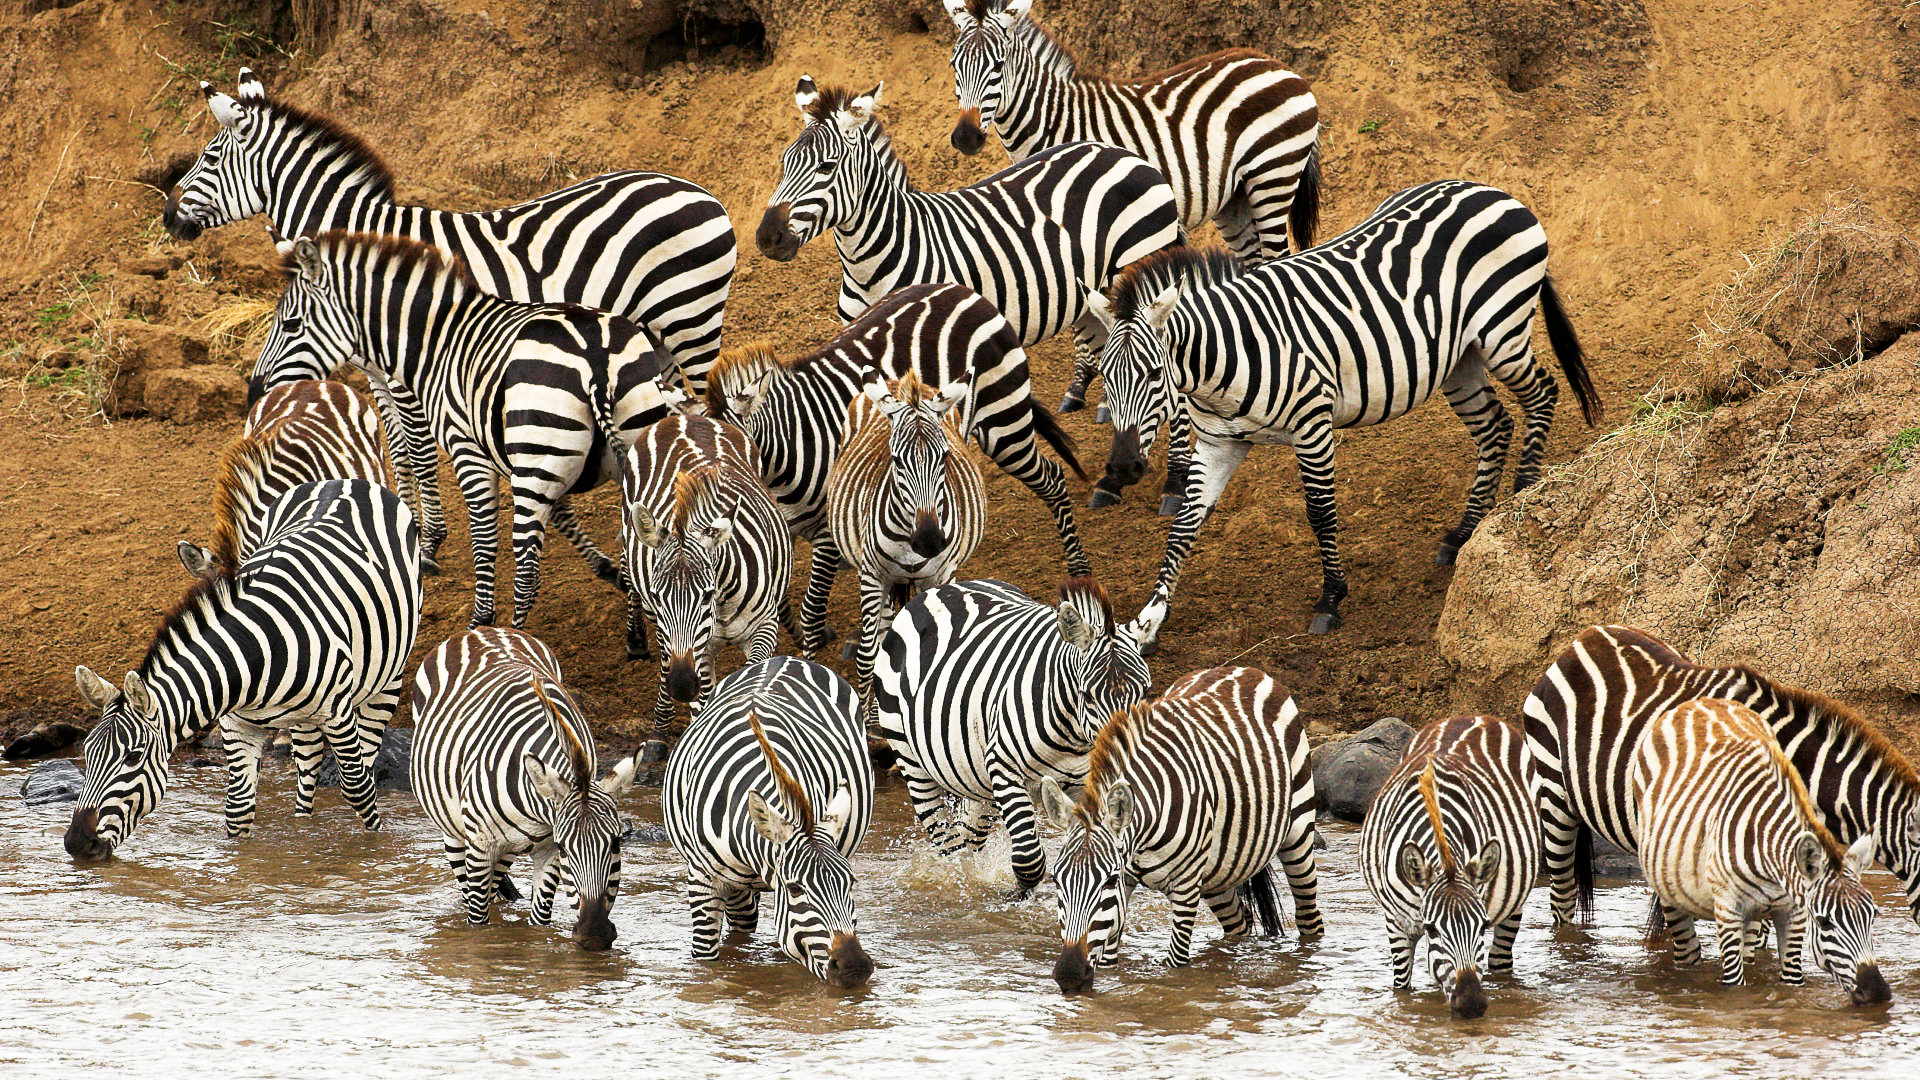 zebra herd wallpaper 53714